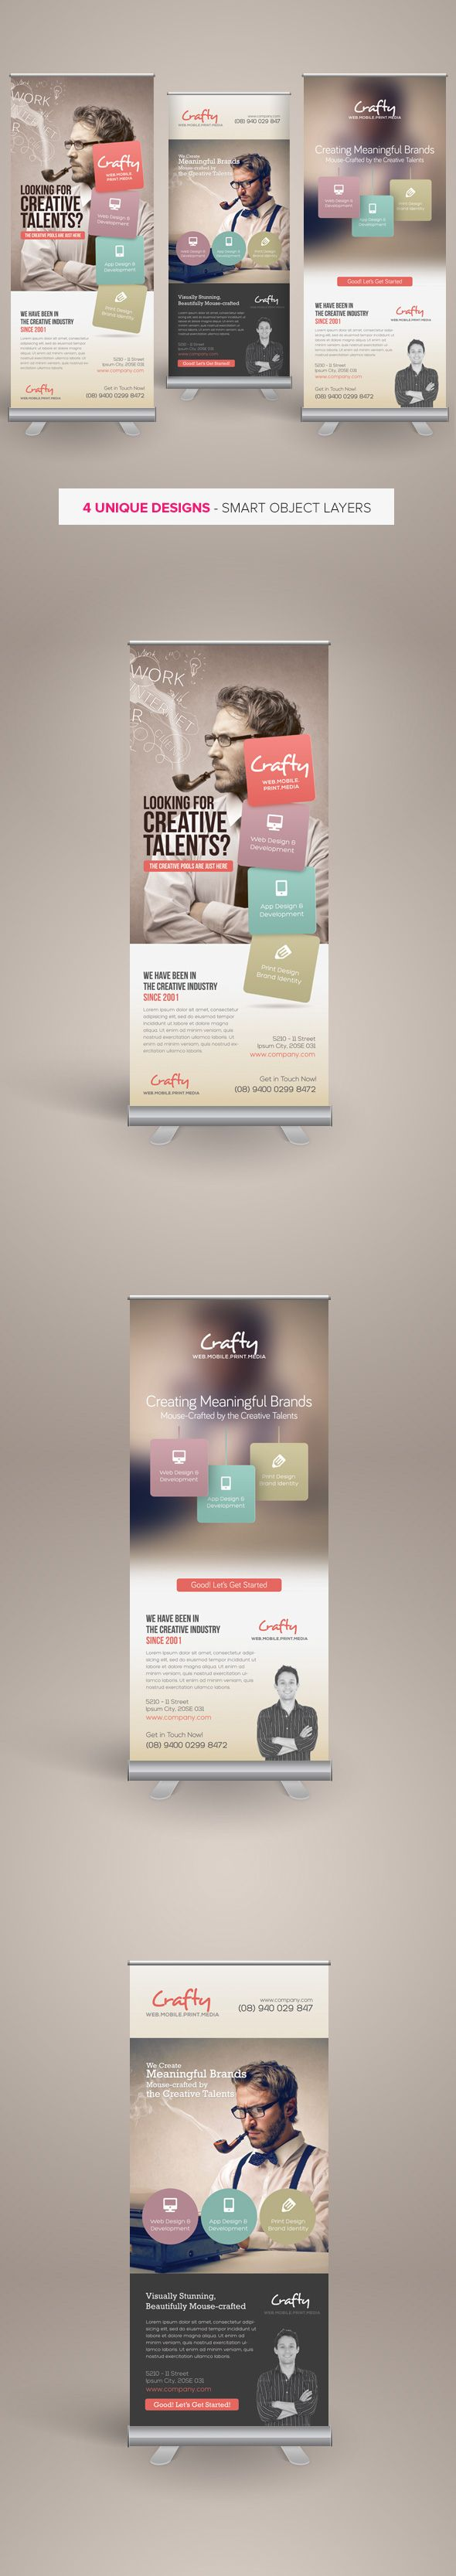 Creative Design Agency Roll-up Banners are design templates created for sale on Graphic River. Download: http://graphicriver.net/item/creative-design-agency-rollup-banners/5899639?r=kinzi21